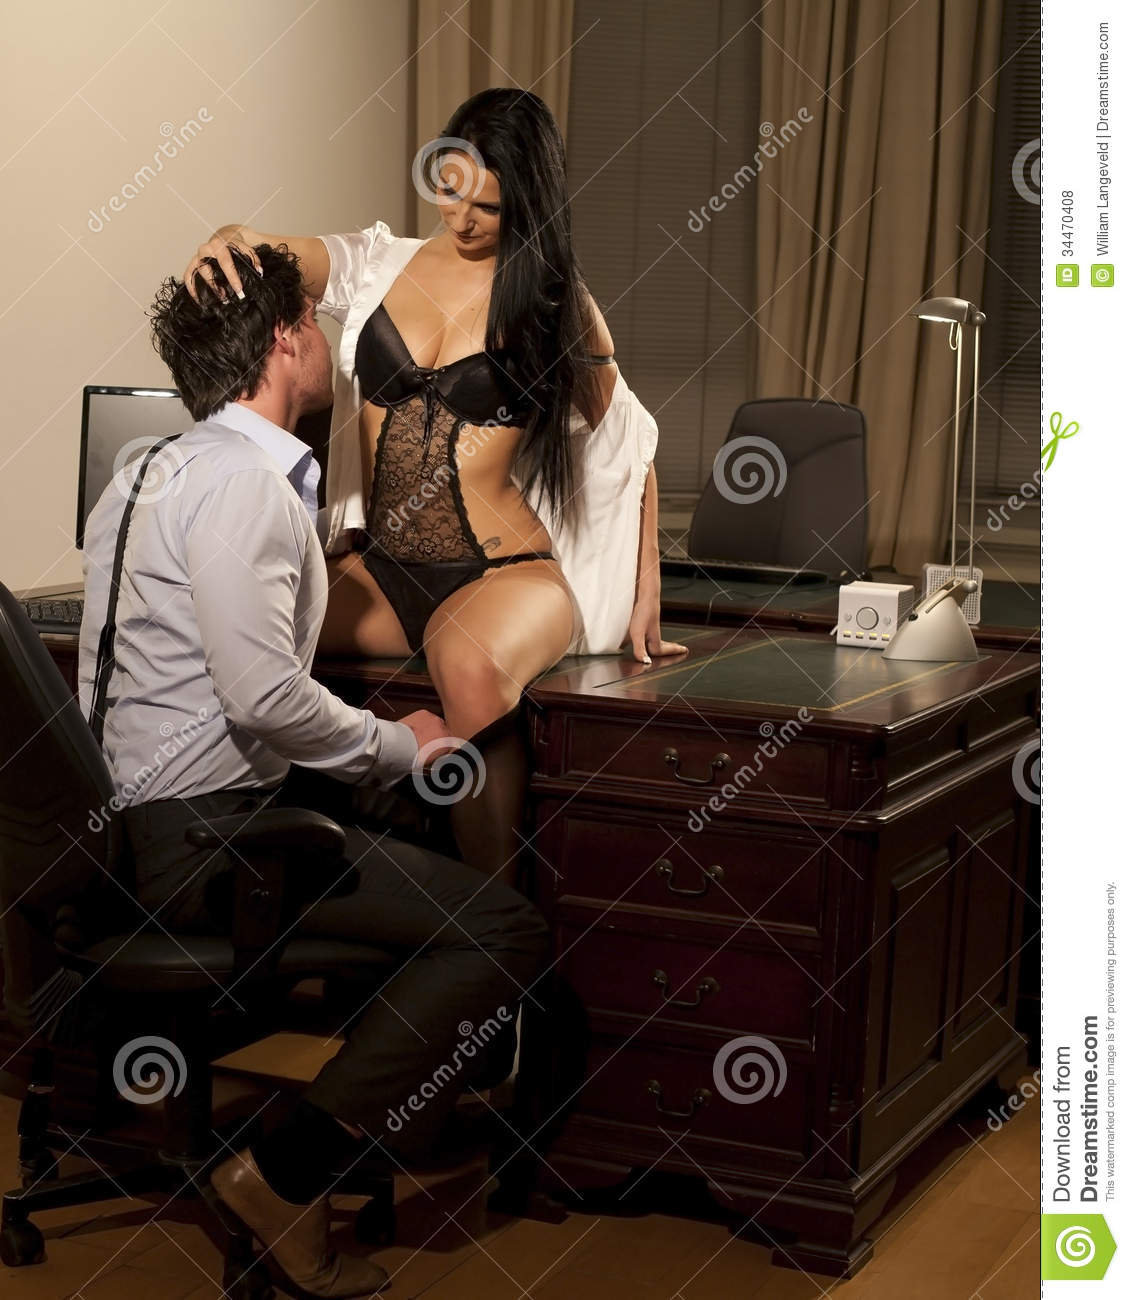 directeur et femme sexy au bureau photo stock image. Black Bedroom Furniture Sets. Home Design Ideas